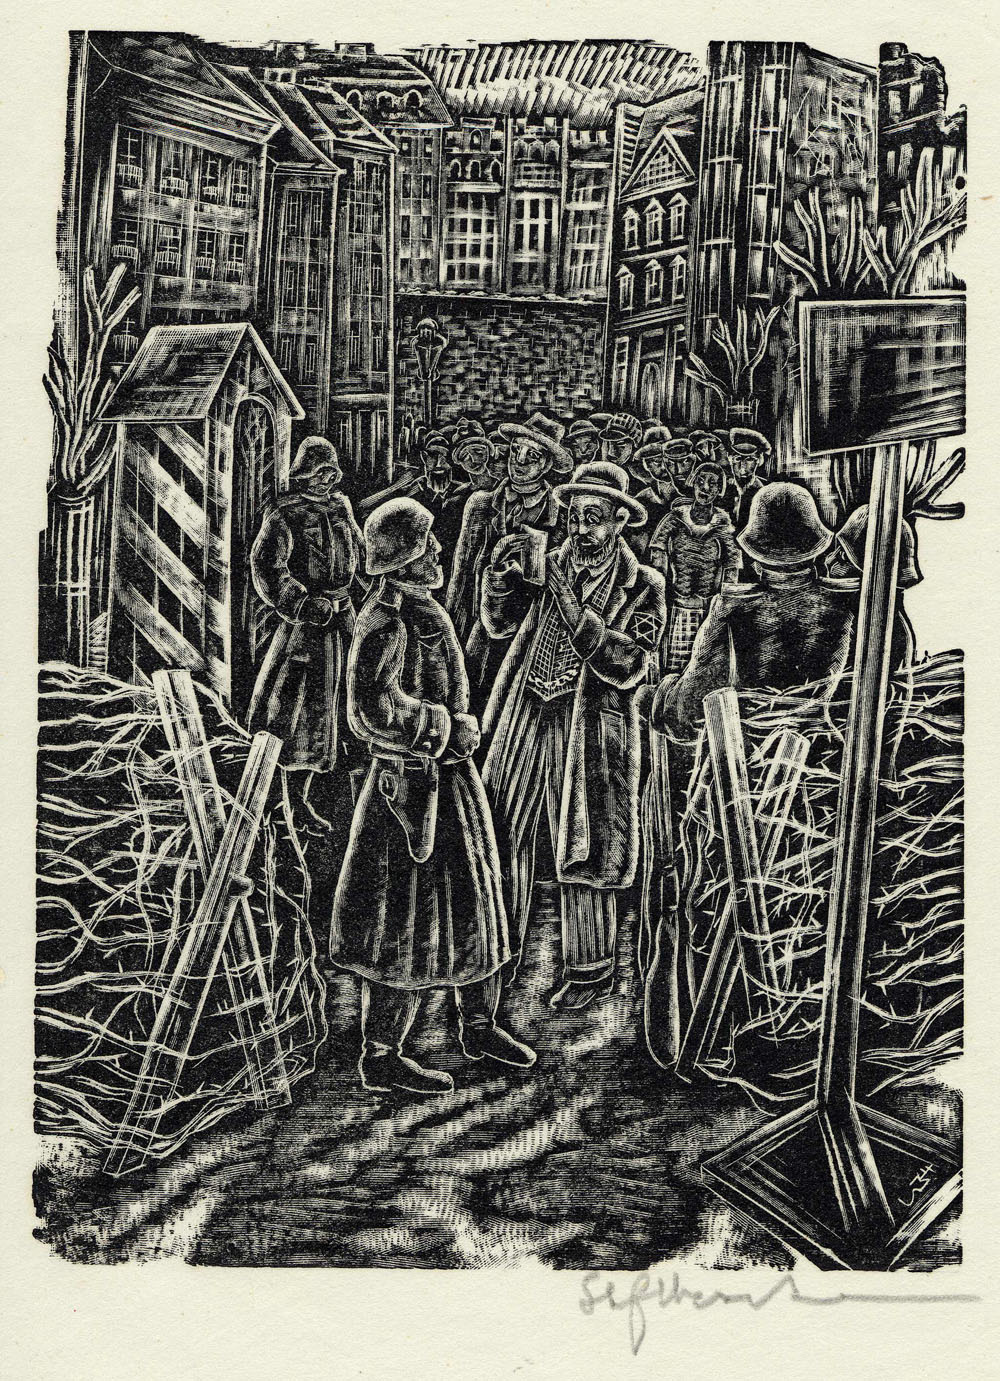 ''Entrance to the Ghetto'', woodcut print by Stefan Mrozewski